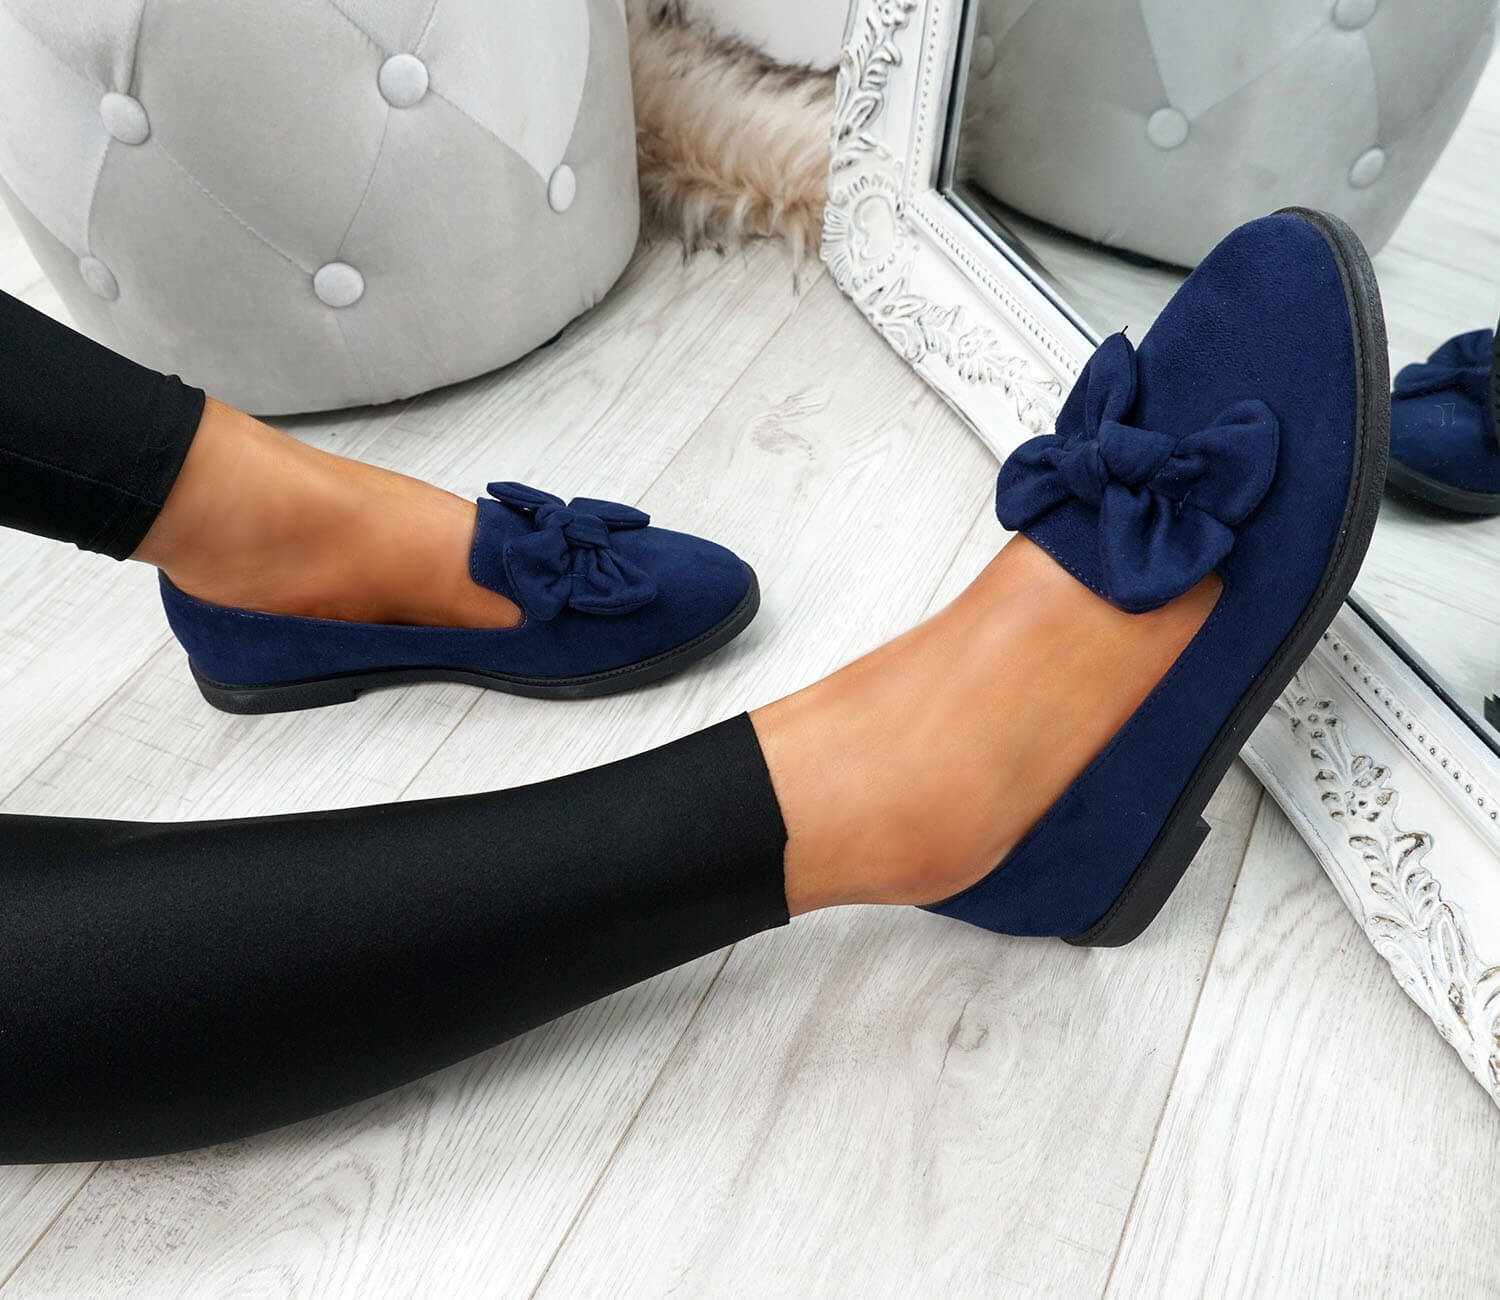 WOMENS-LADIES-BOW-BALLERINA-PUMPS-FLATS-SLIP-ON-BALLET-CASUAL-WORK-SHOES-SIZE thumbnail 24